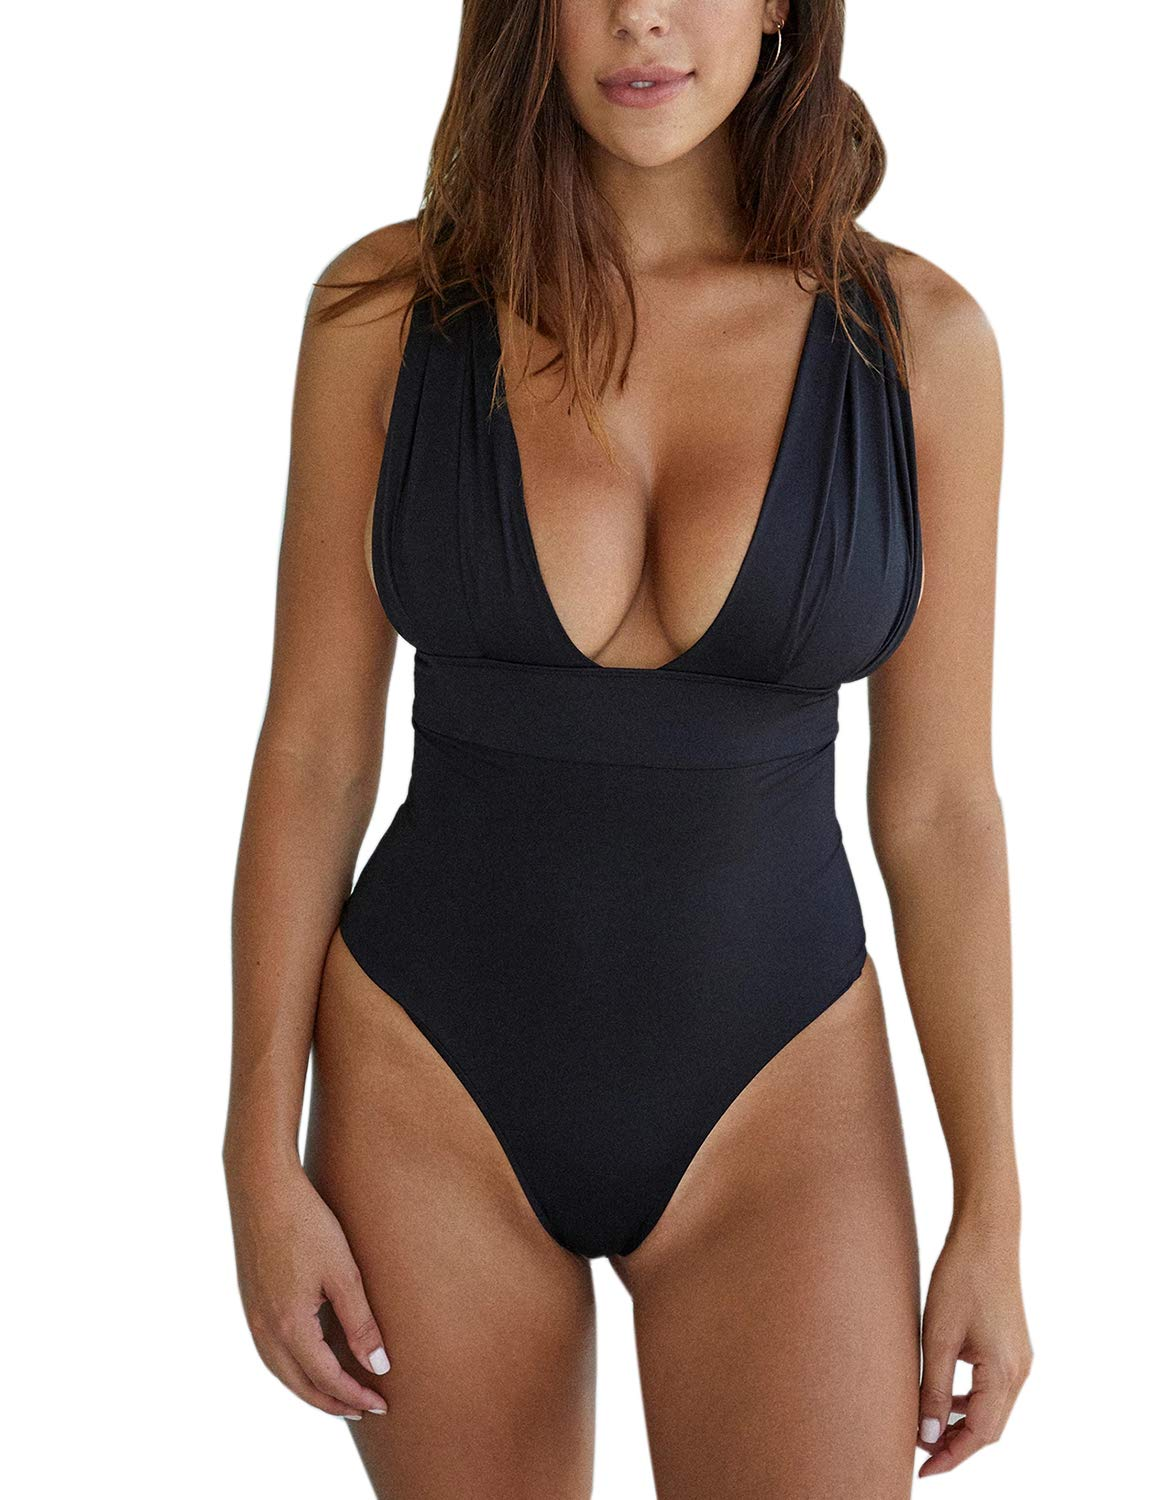 May Women's One Piece Swimsuit Sexy Low V Neck High Cut Bathing Suit Monokini Swimwear Black